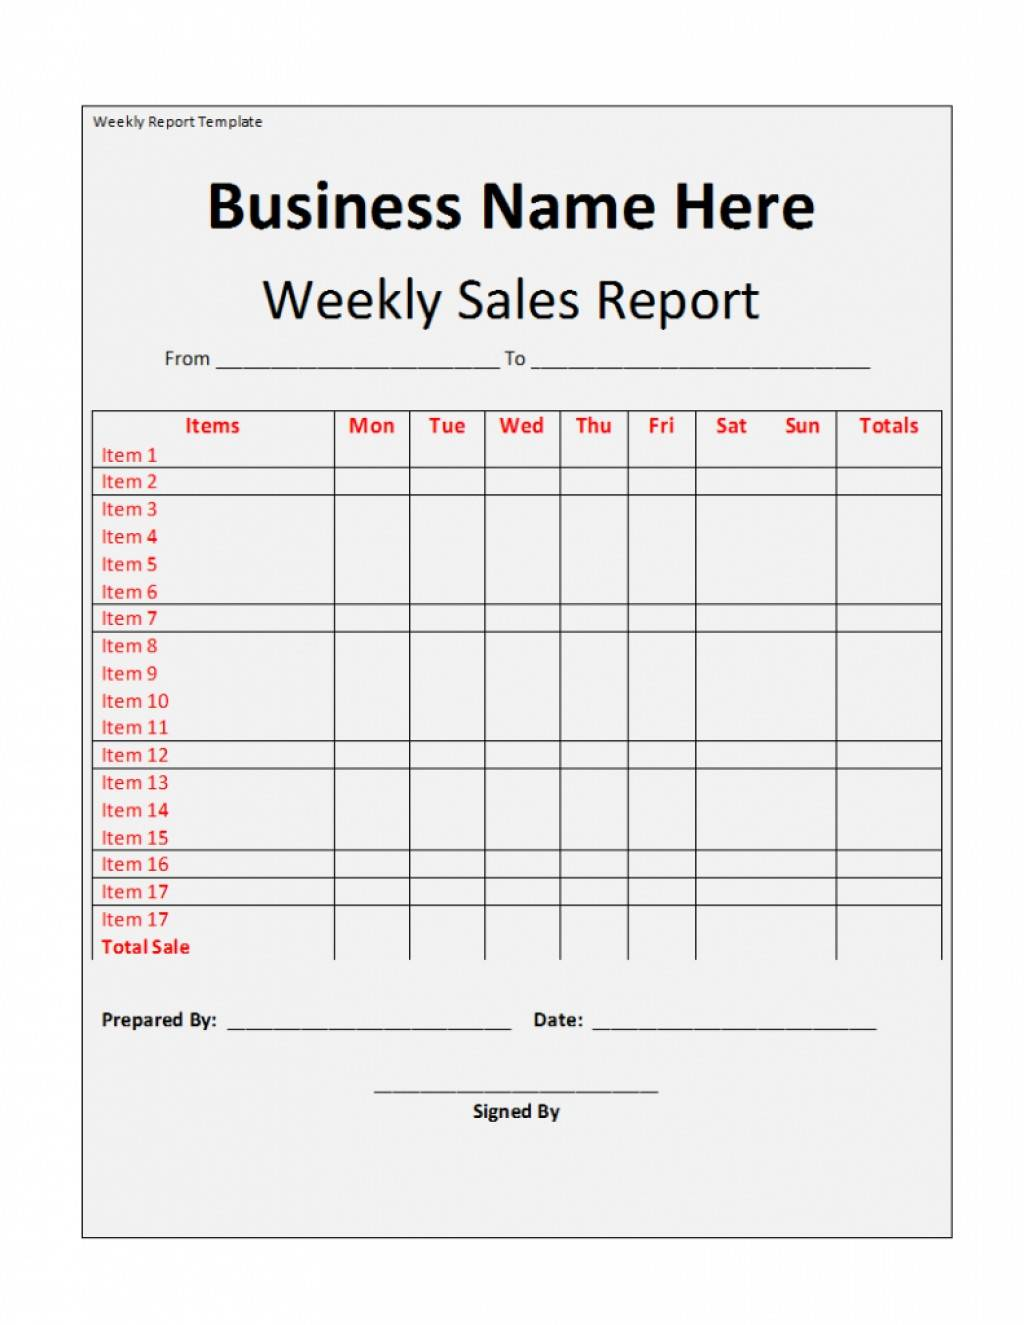 Weekly Sales Report Template Download